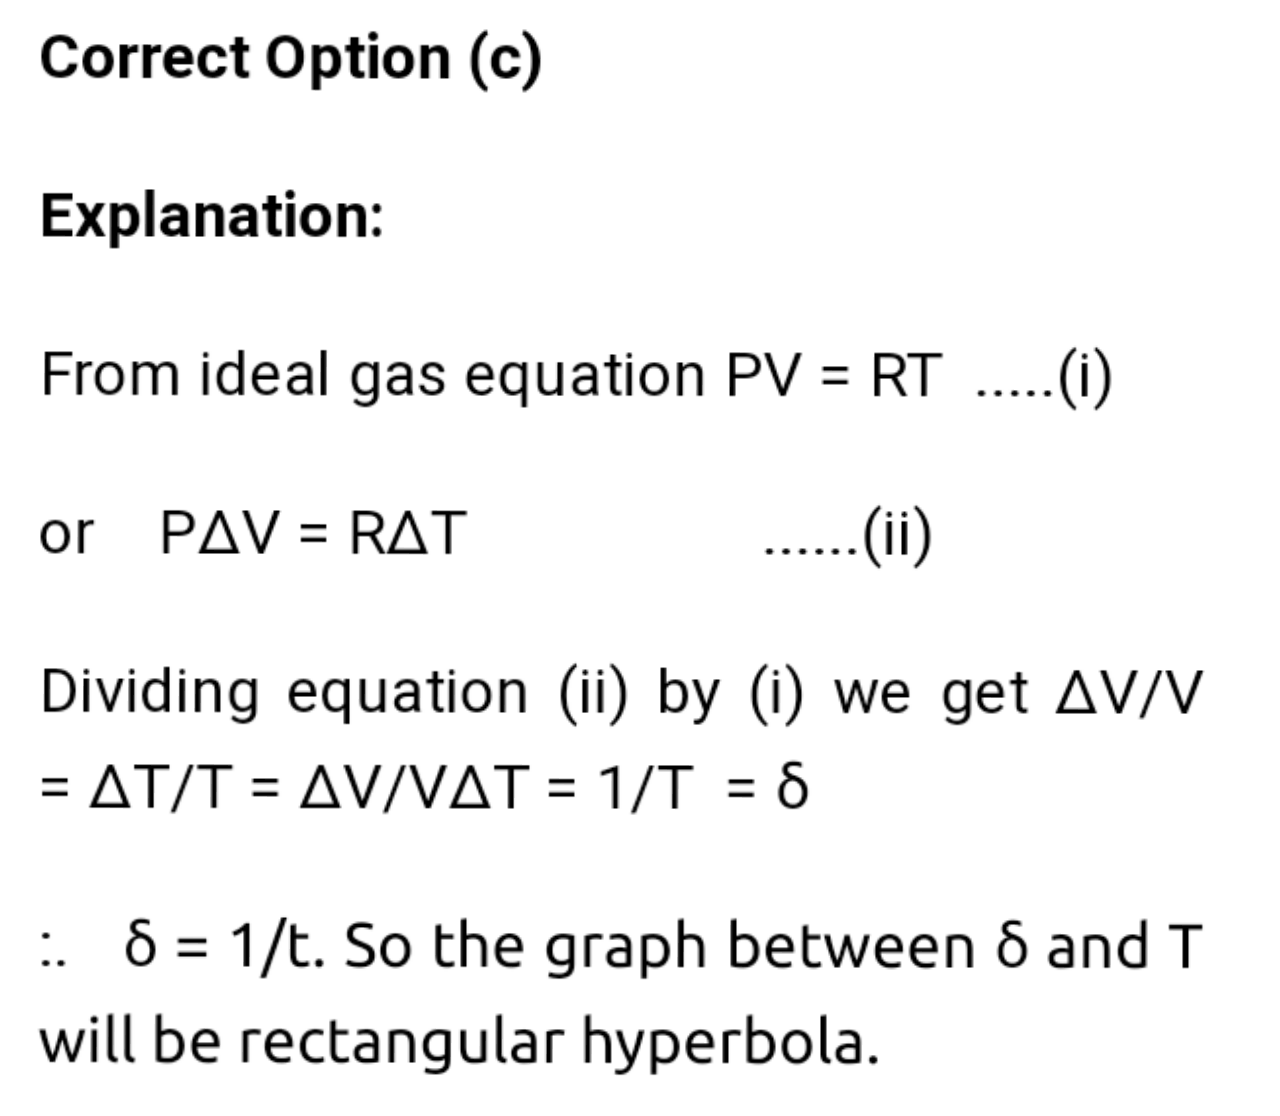 An ideal gas is initially at temperature T and volume V. Its volume is increased by ΔV due to an increase in temperature △ T, pressure remaining constant. The quantity δ=ΔV/(VΔT) varies with temperature as